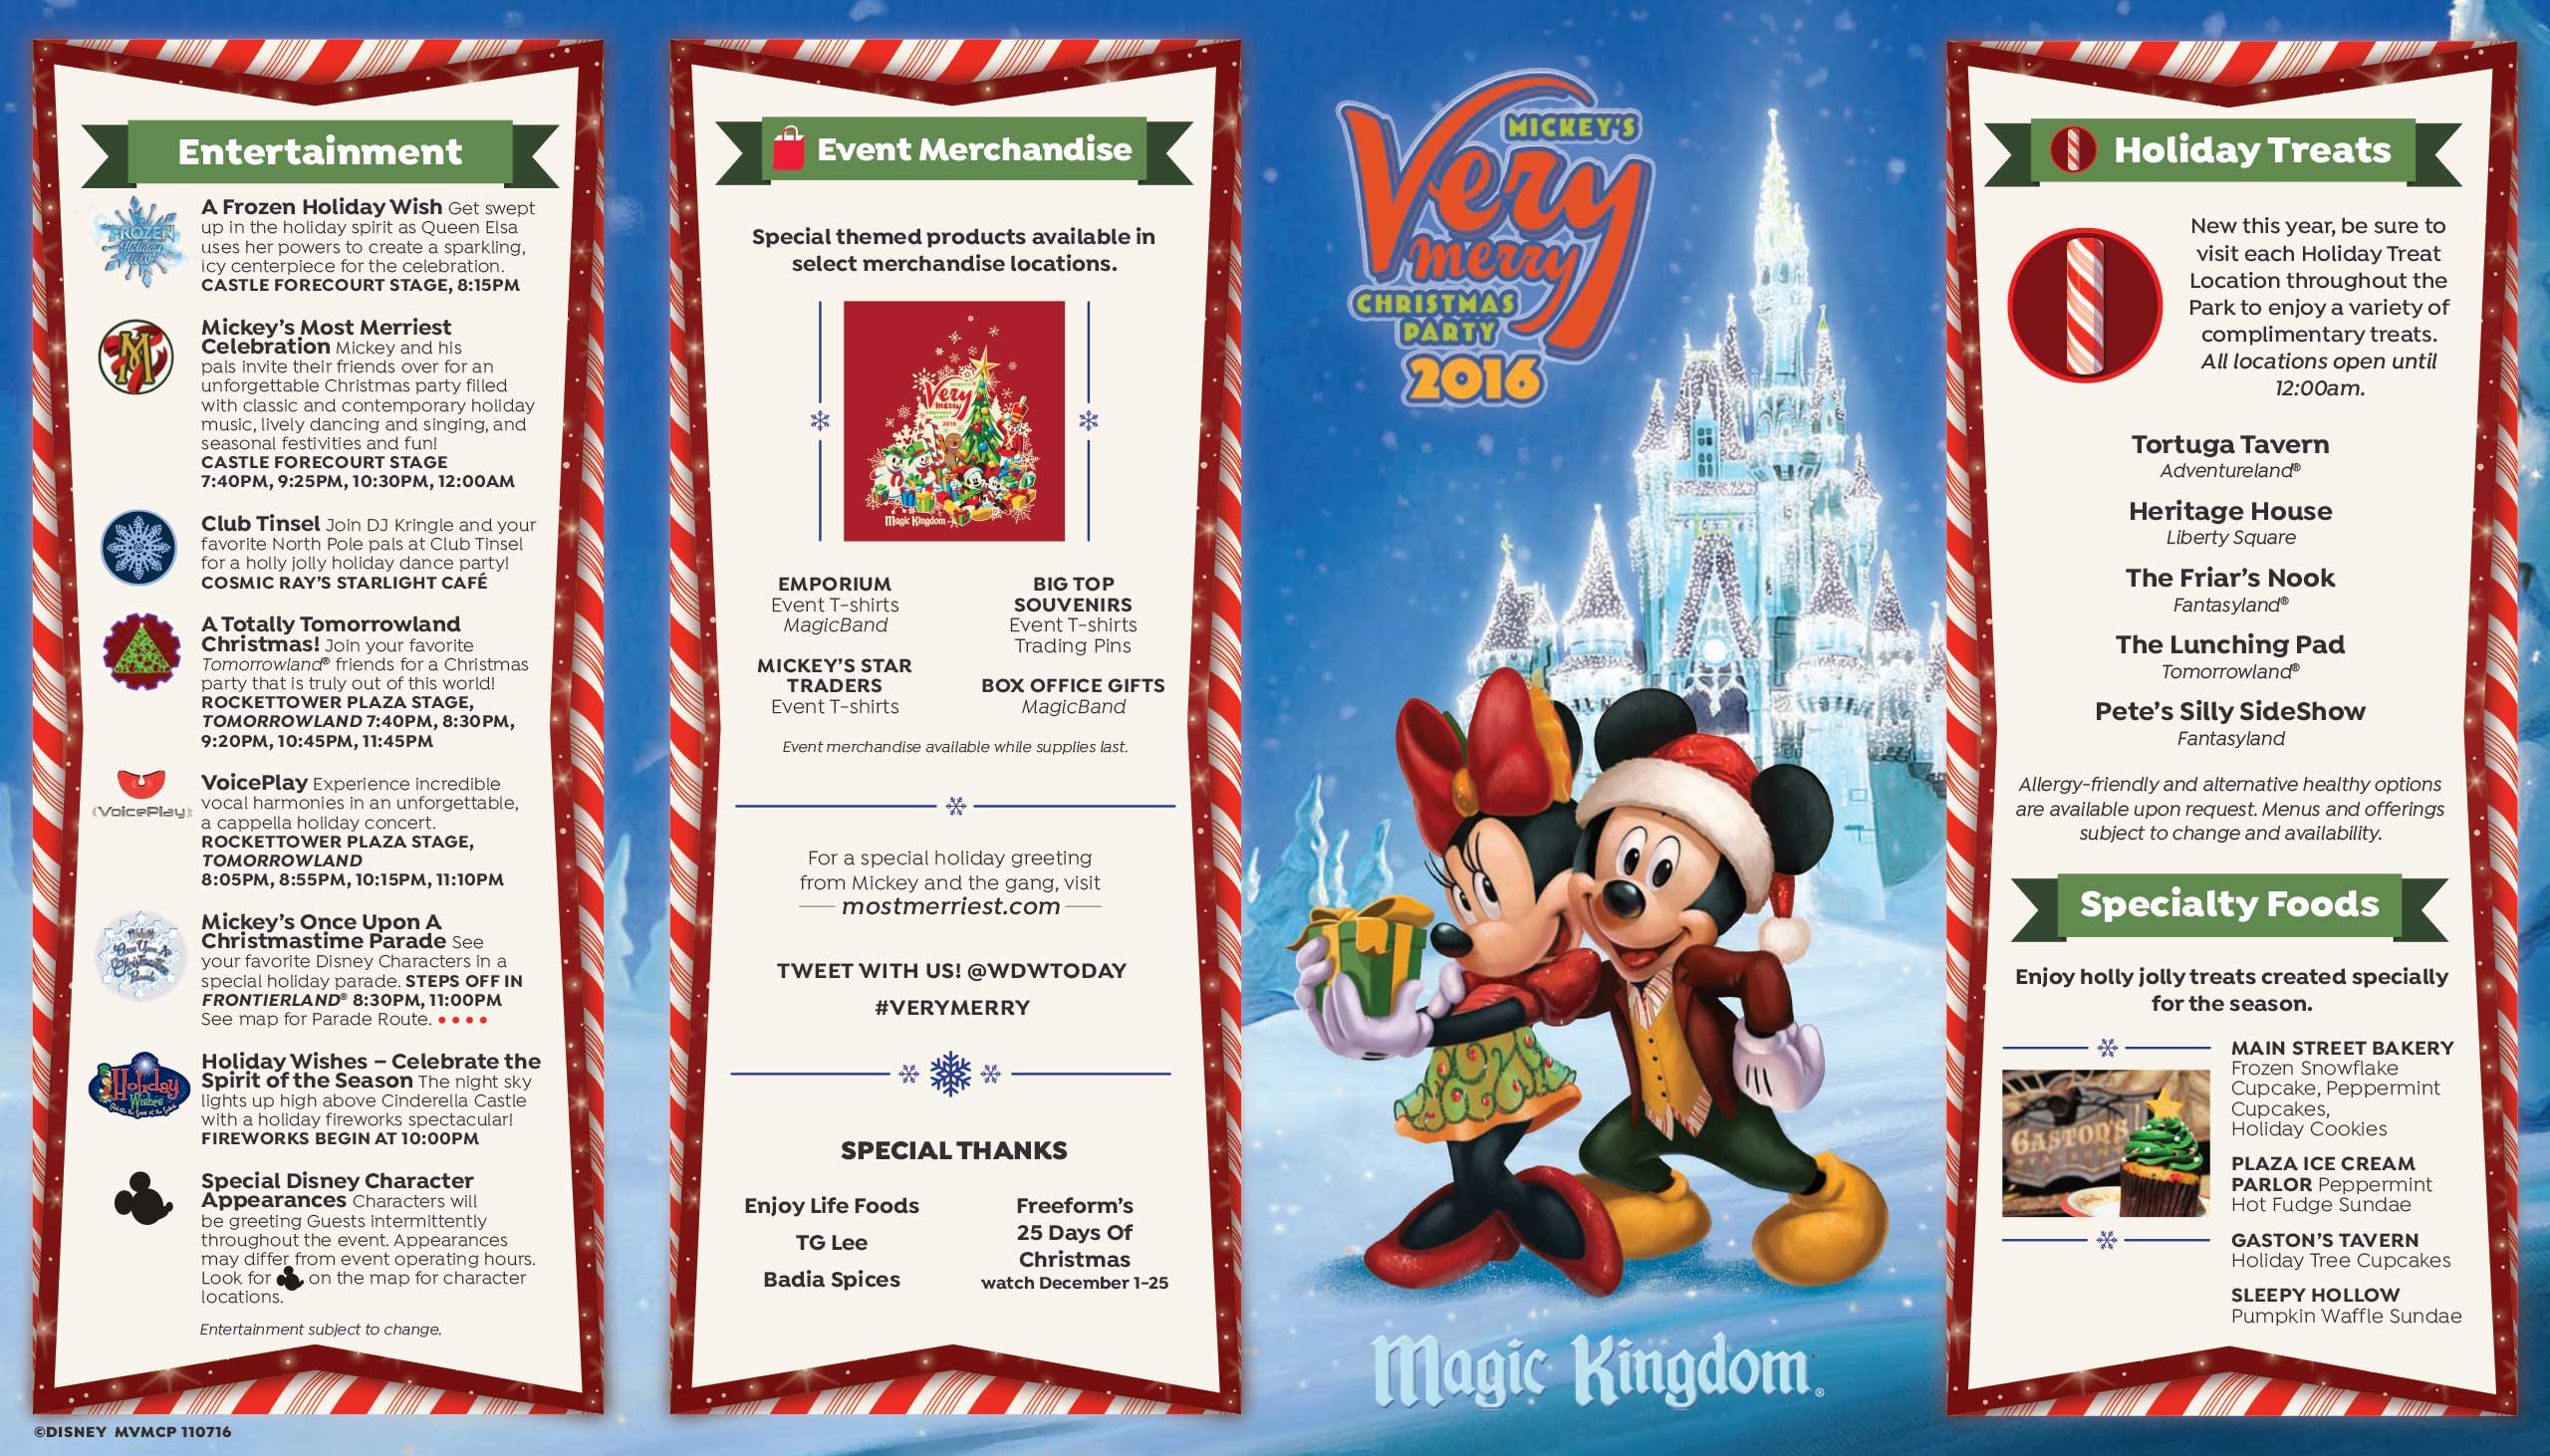 mickeys very merry christmas party 2016 guide map and entertainment schedule - Mickeys Christmas Party Tickets